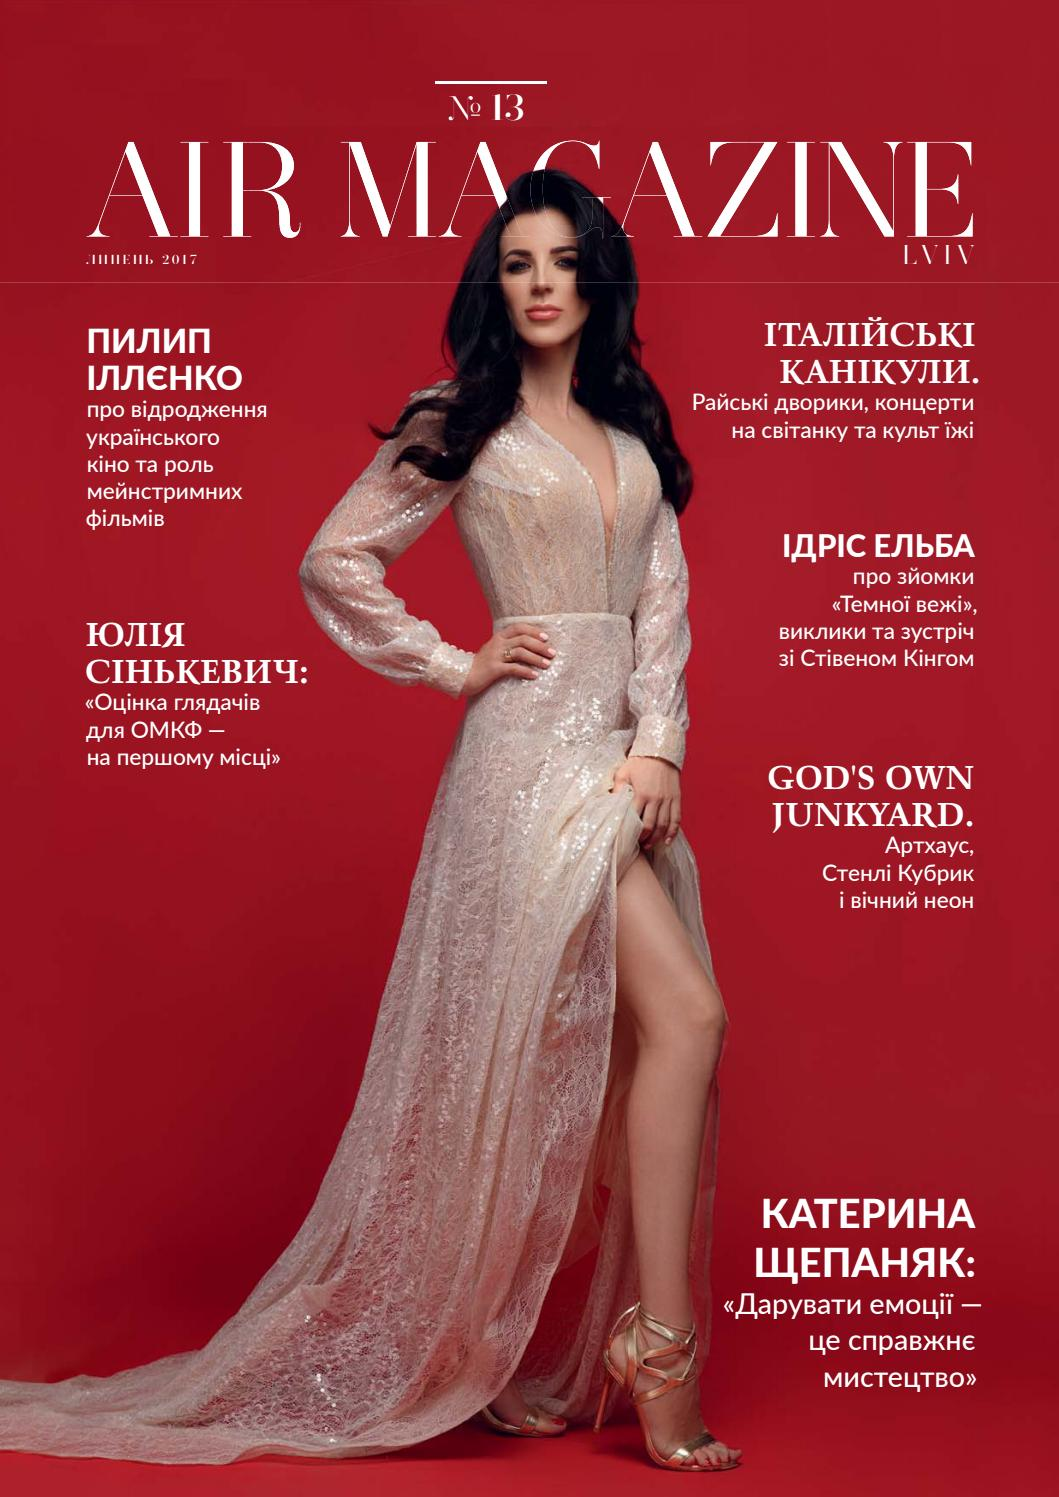 Air Magazine Lviv  13 by AIR MAGAZINE LVIV - issuu 8fc0420d84588